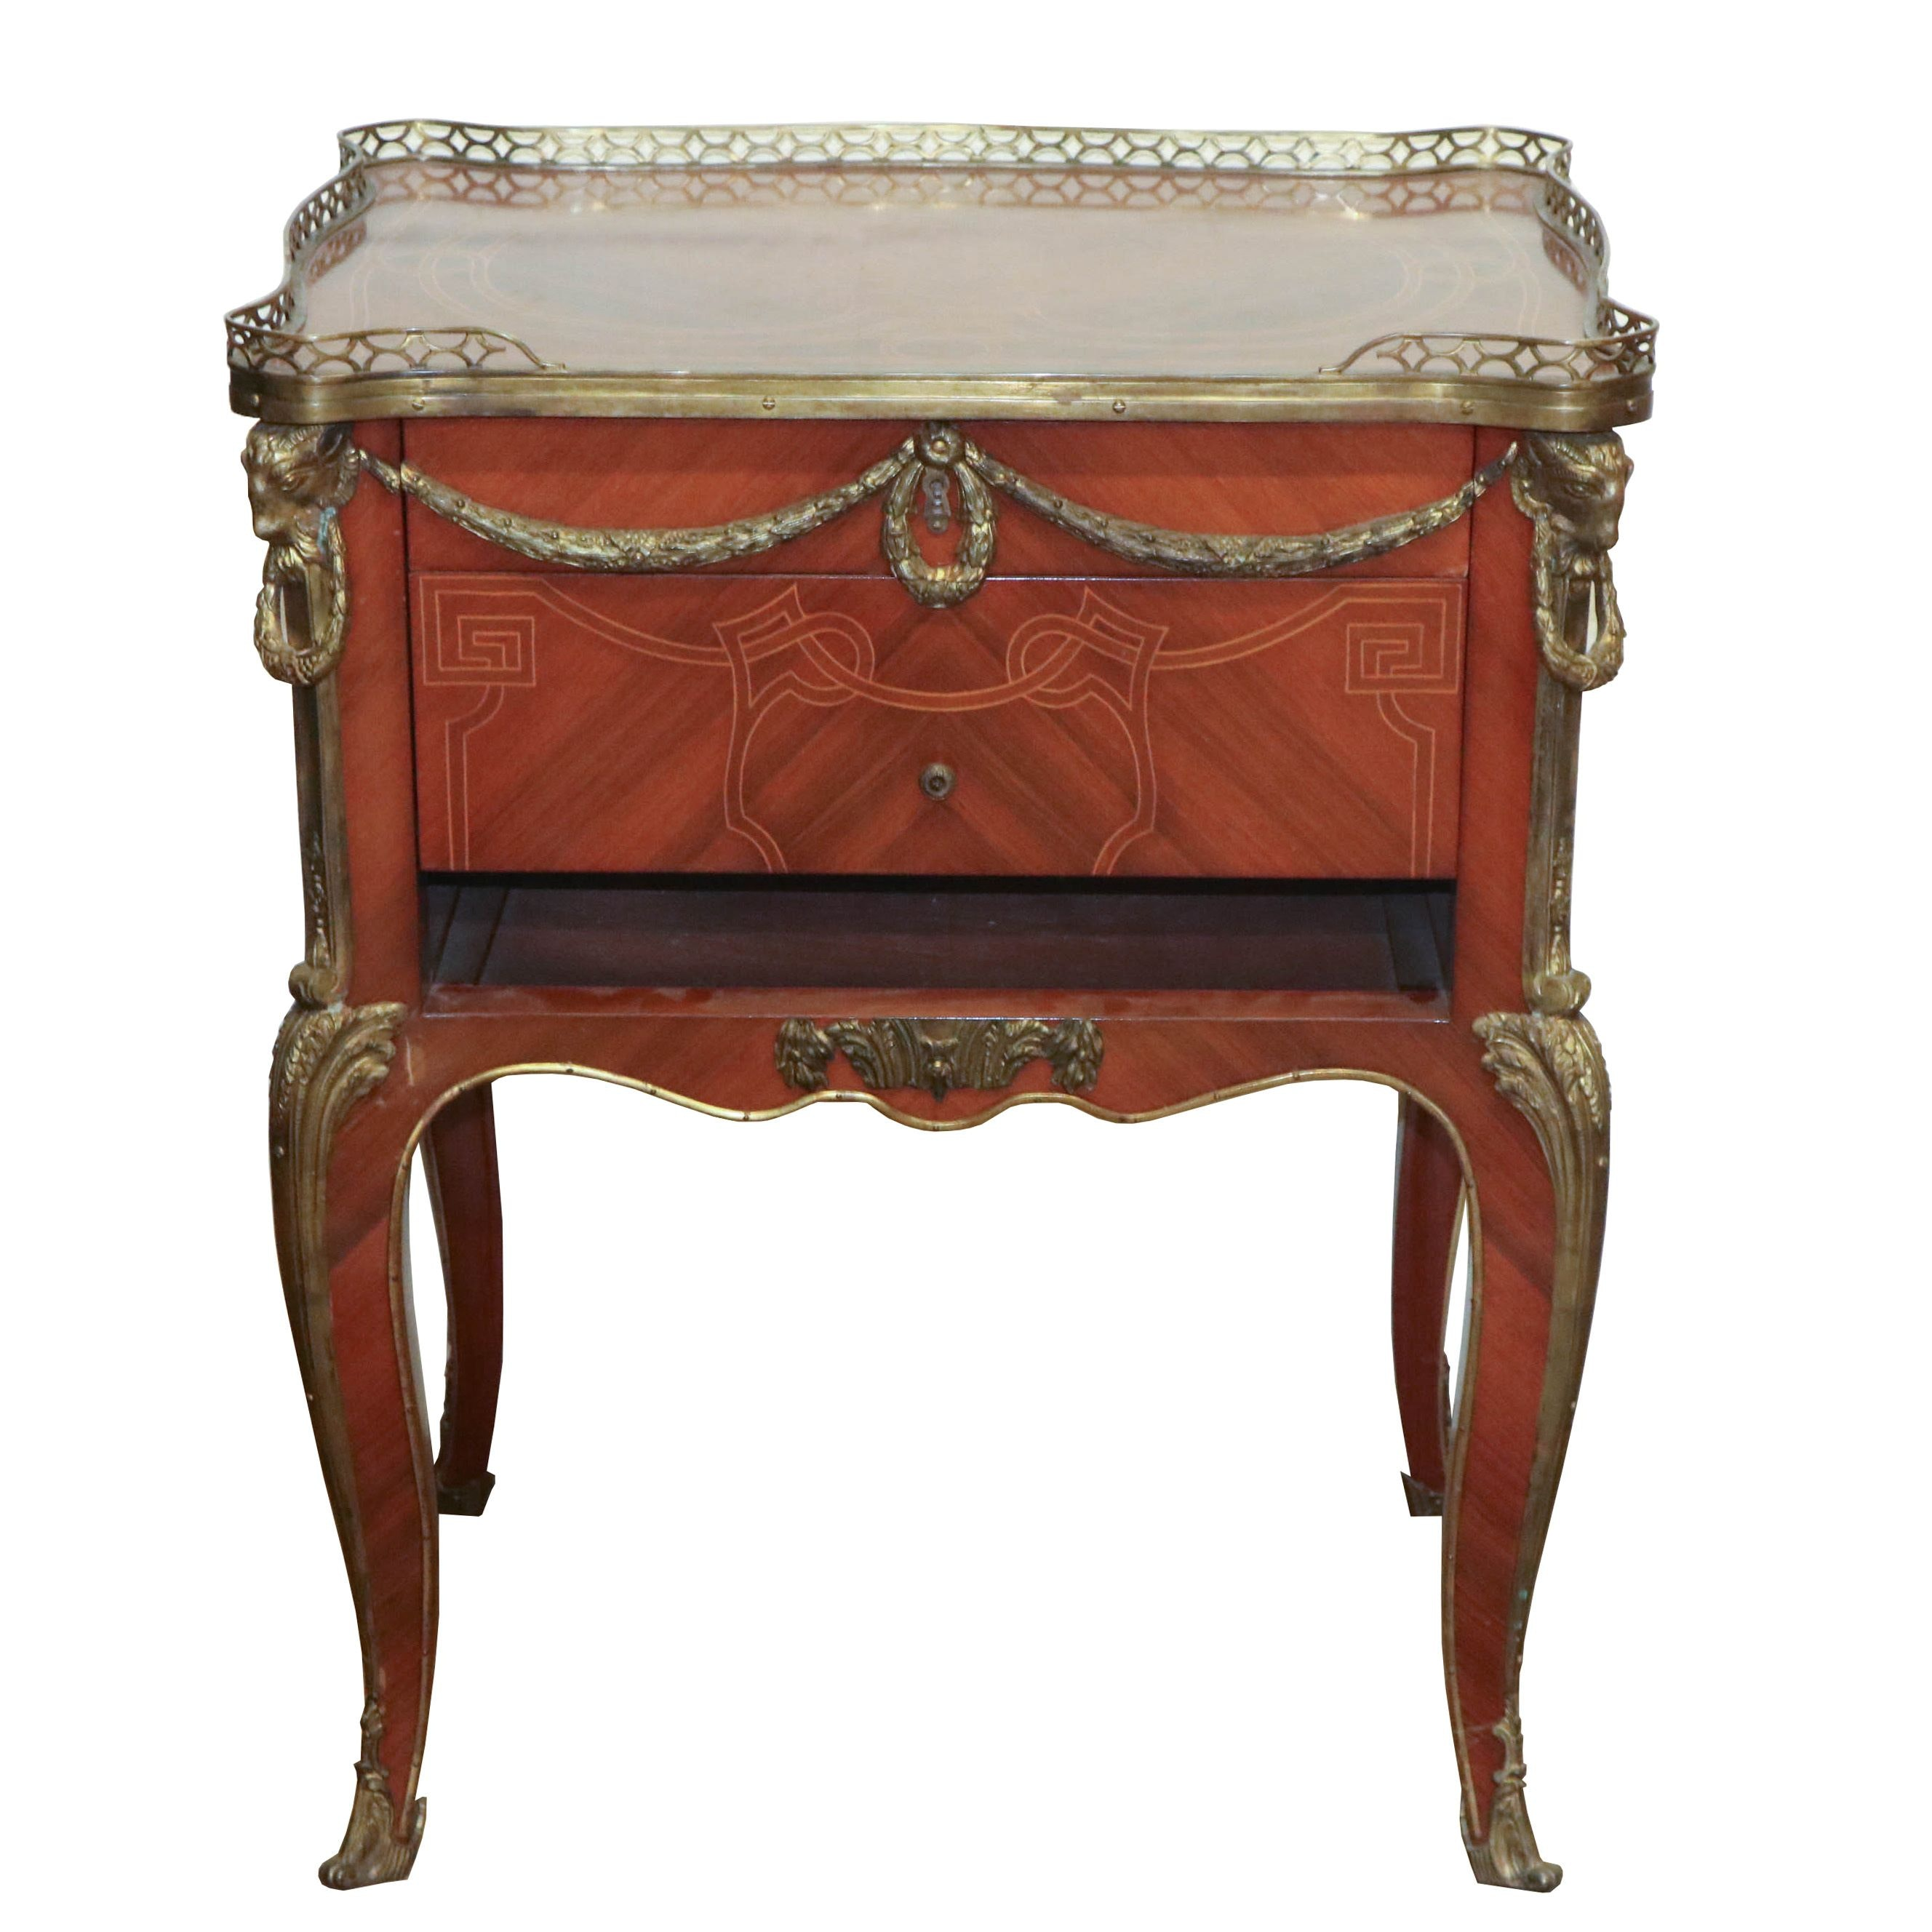 Louis XV Style Walnut Side Table with Ormolu Mounts, Early 20th Century